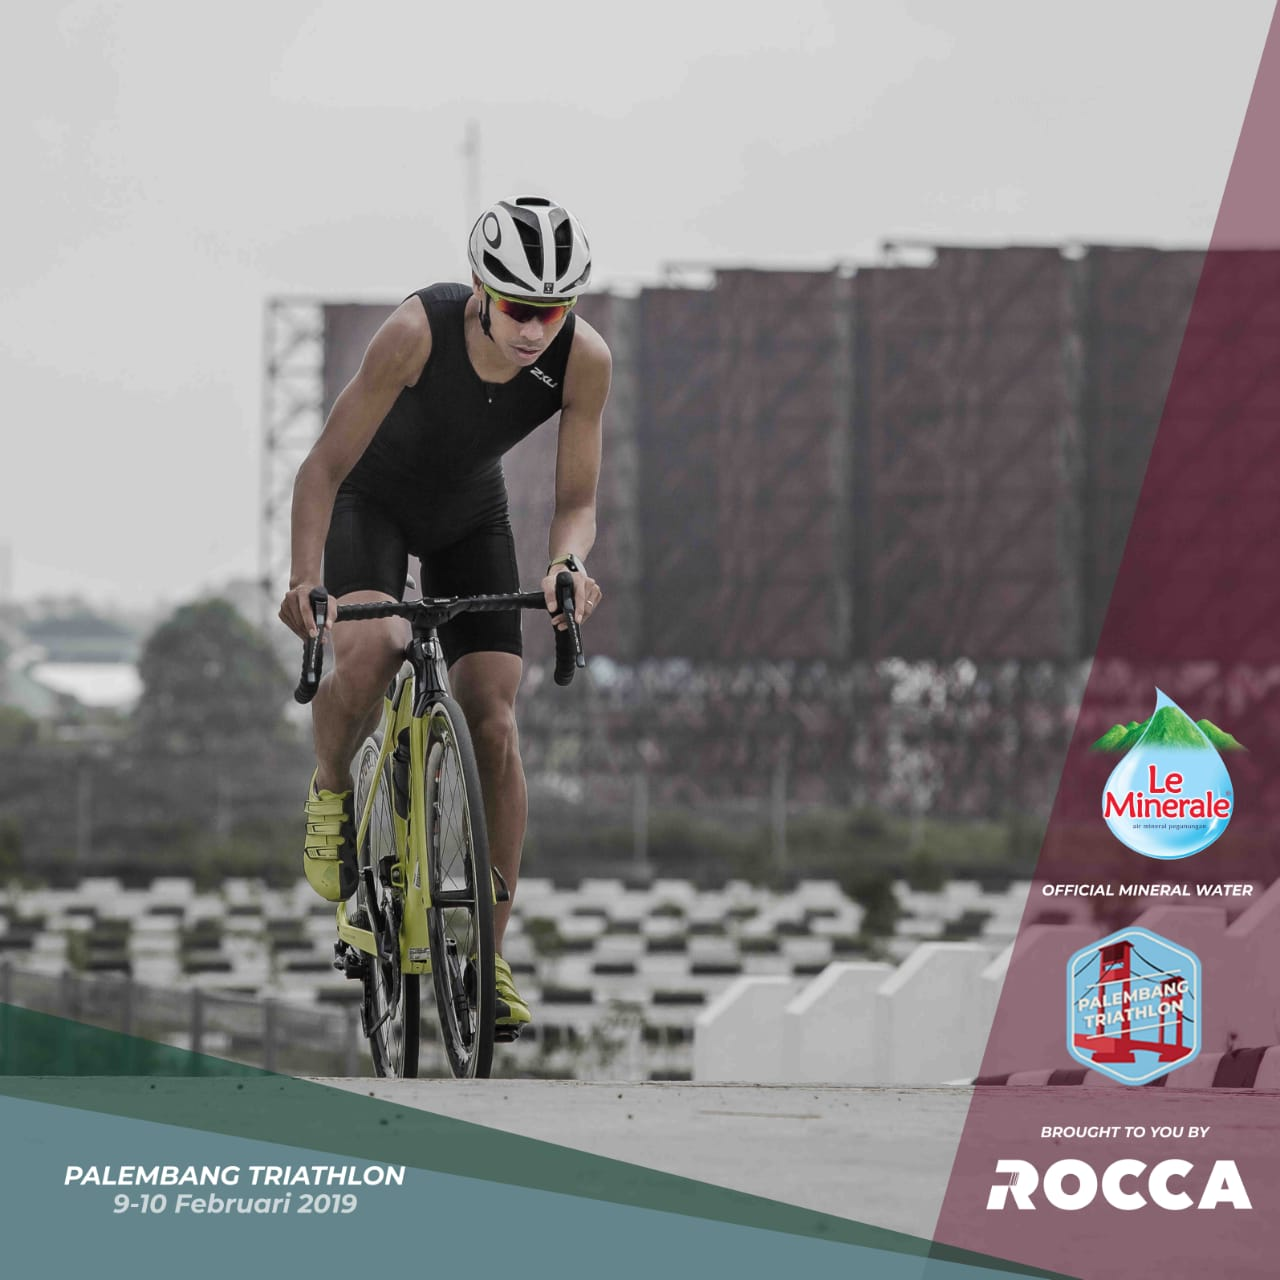 Palembang Triathlon